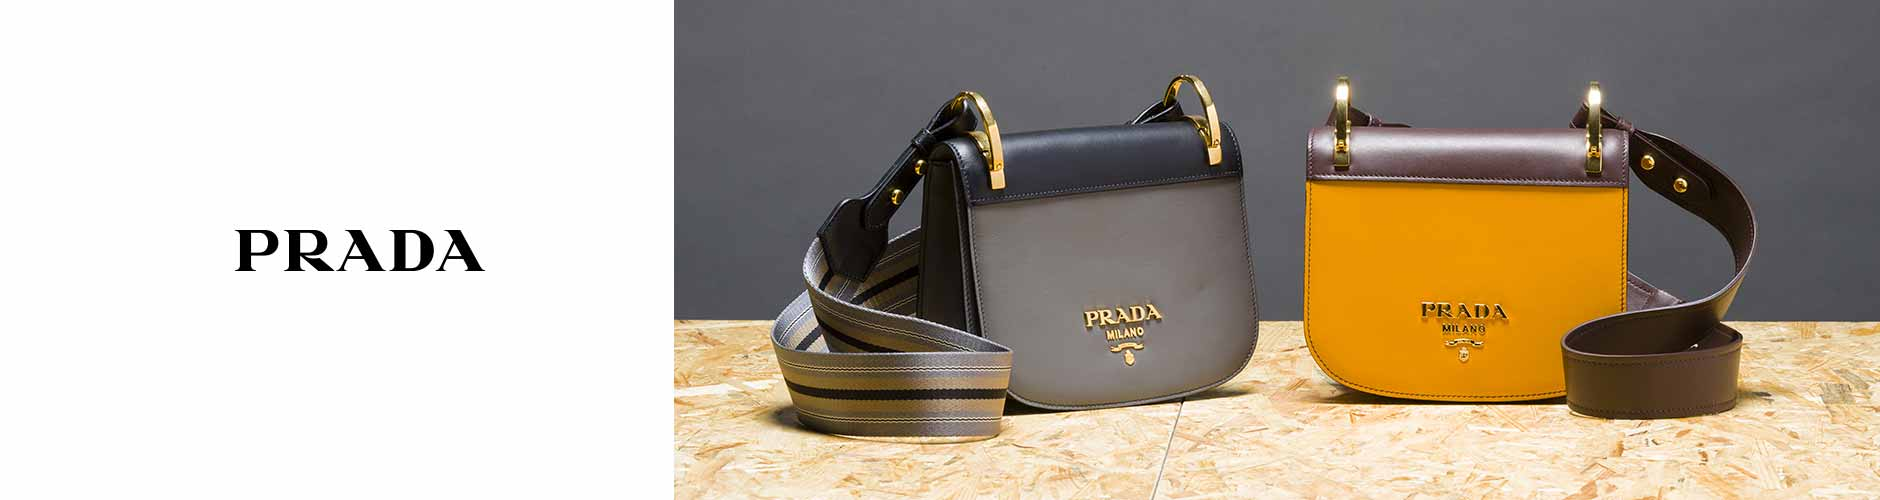 prada wallet new collection